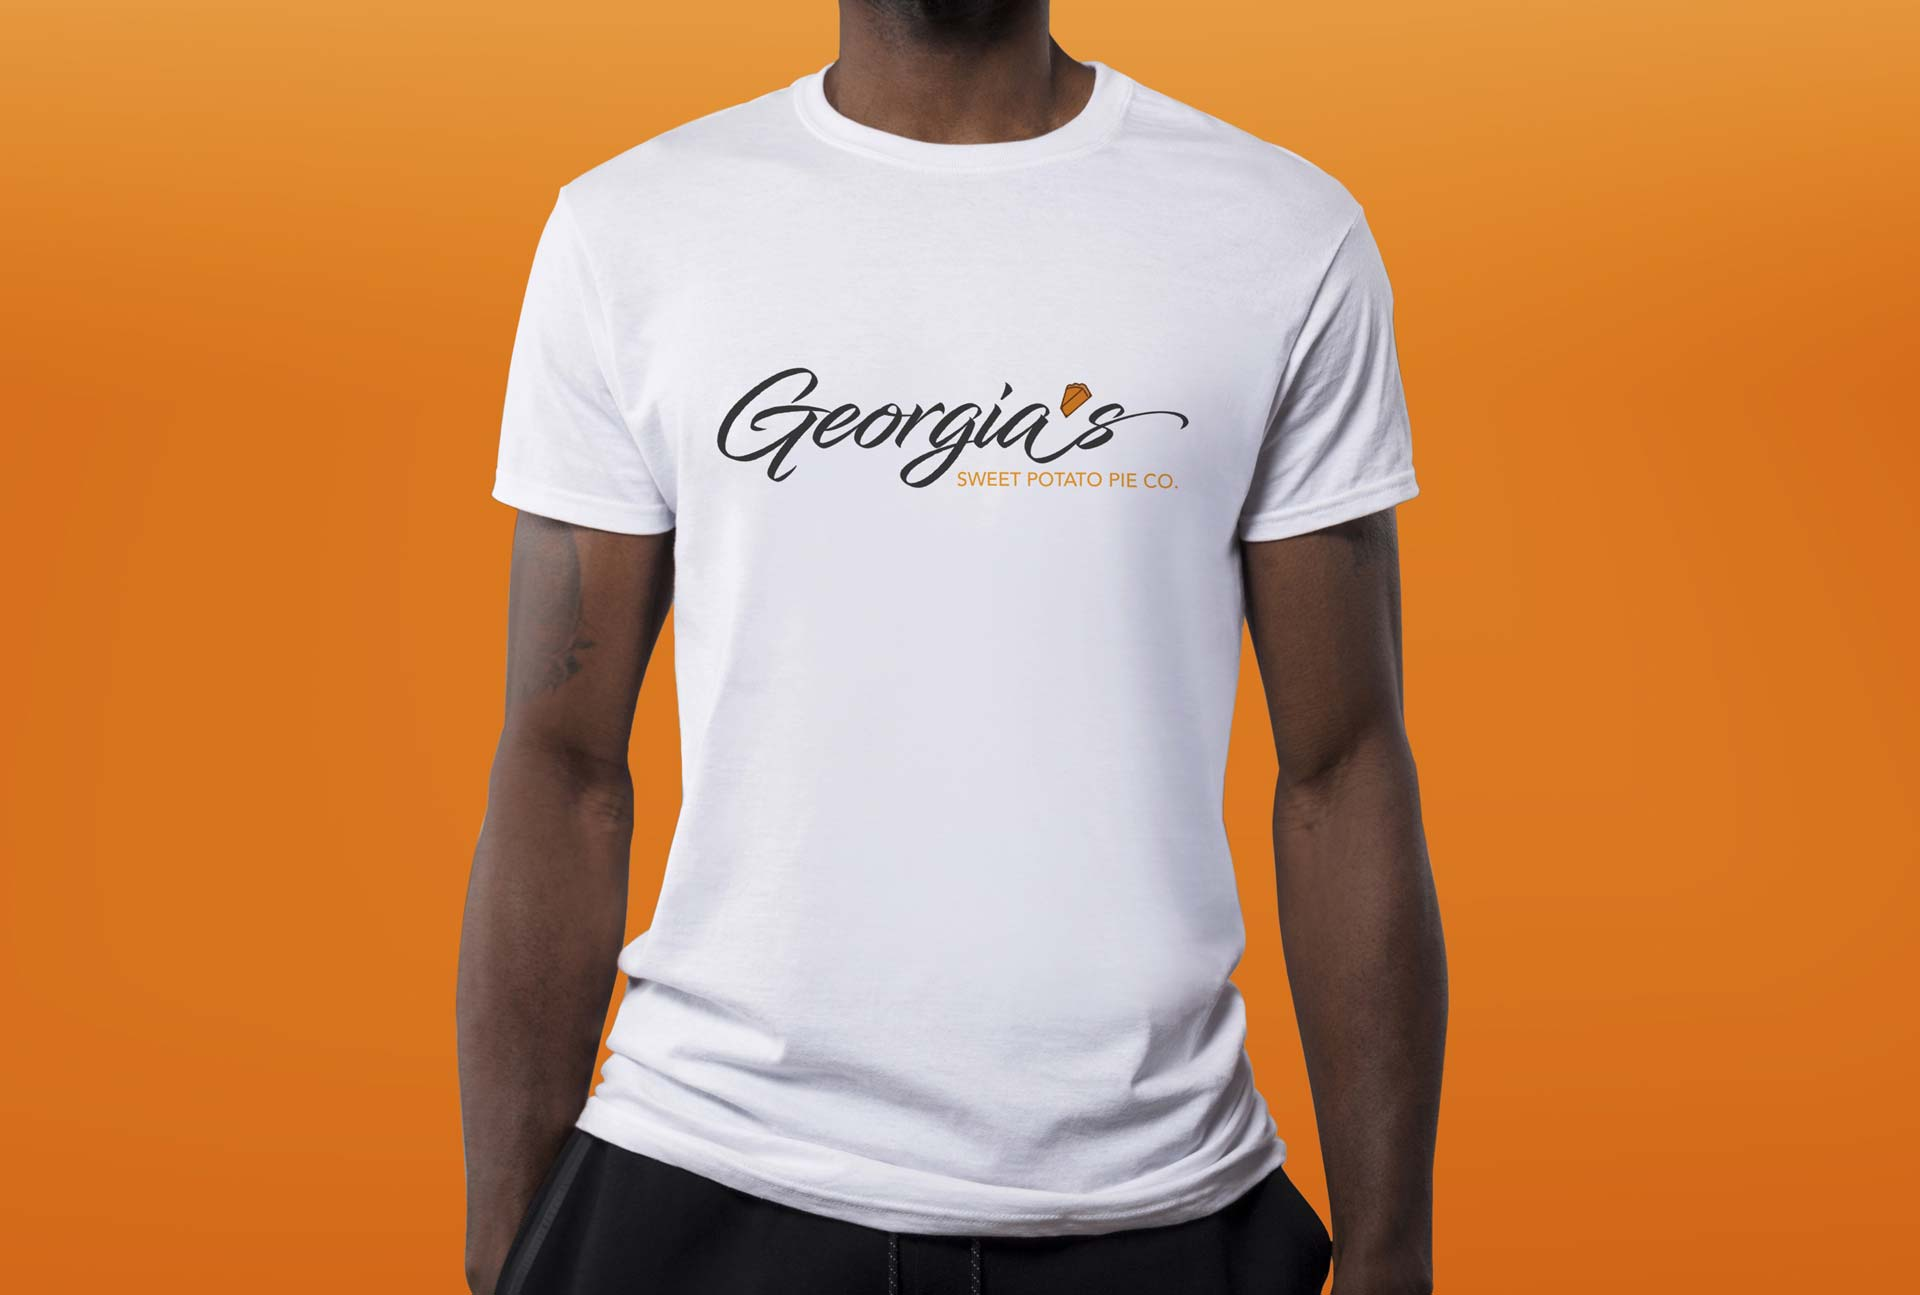 Georgia's Sweet Potato Pie Co. Shirt Concept